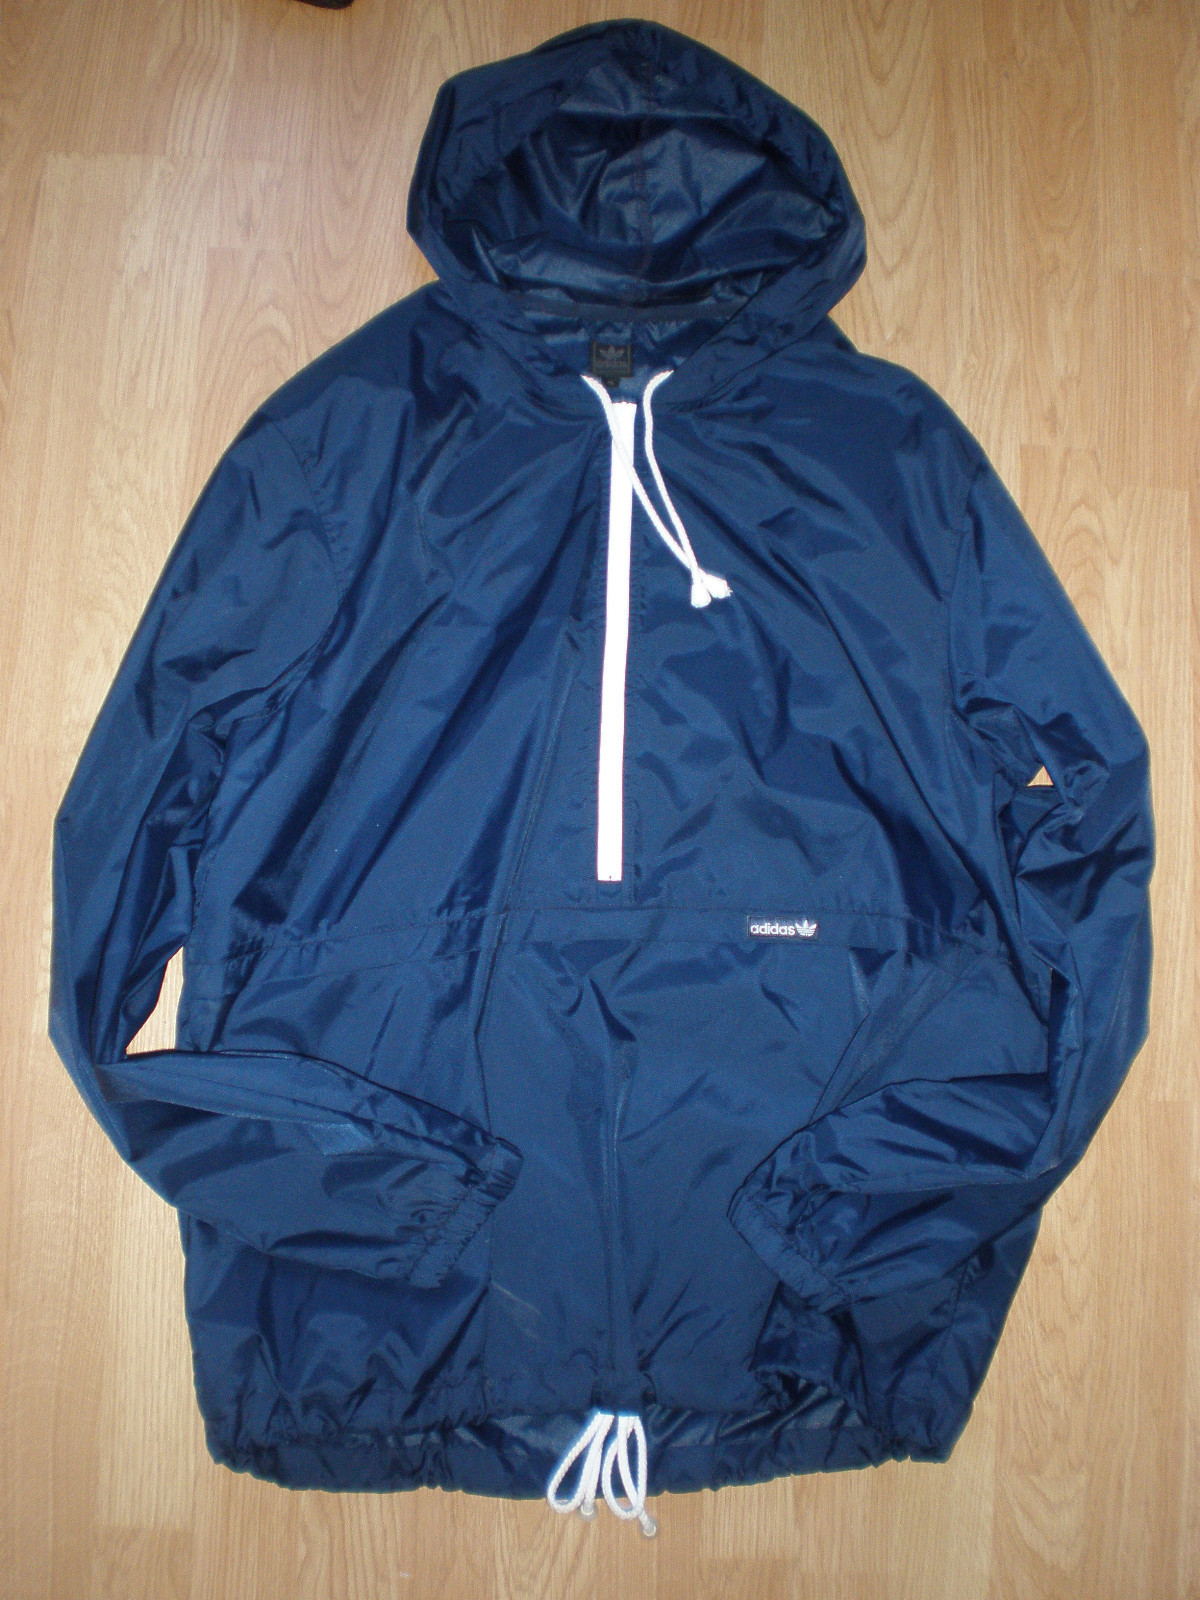 Adidas Awaydays cagoule being sold on Ebay check out on www.thecagoule.com